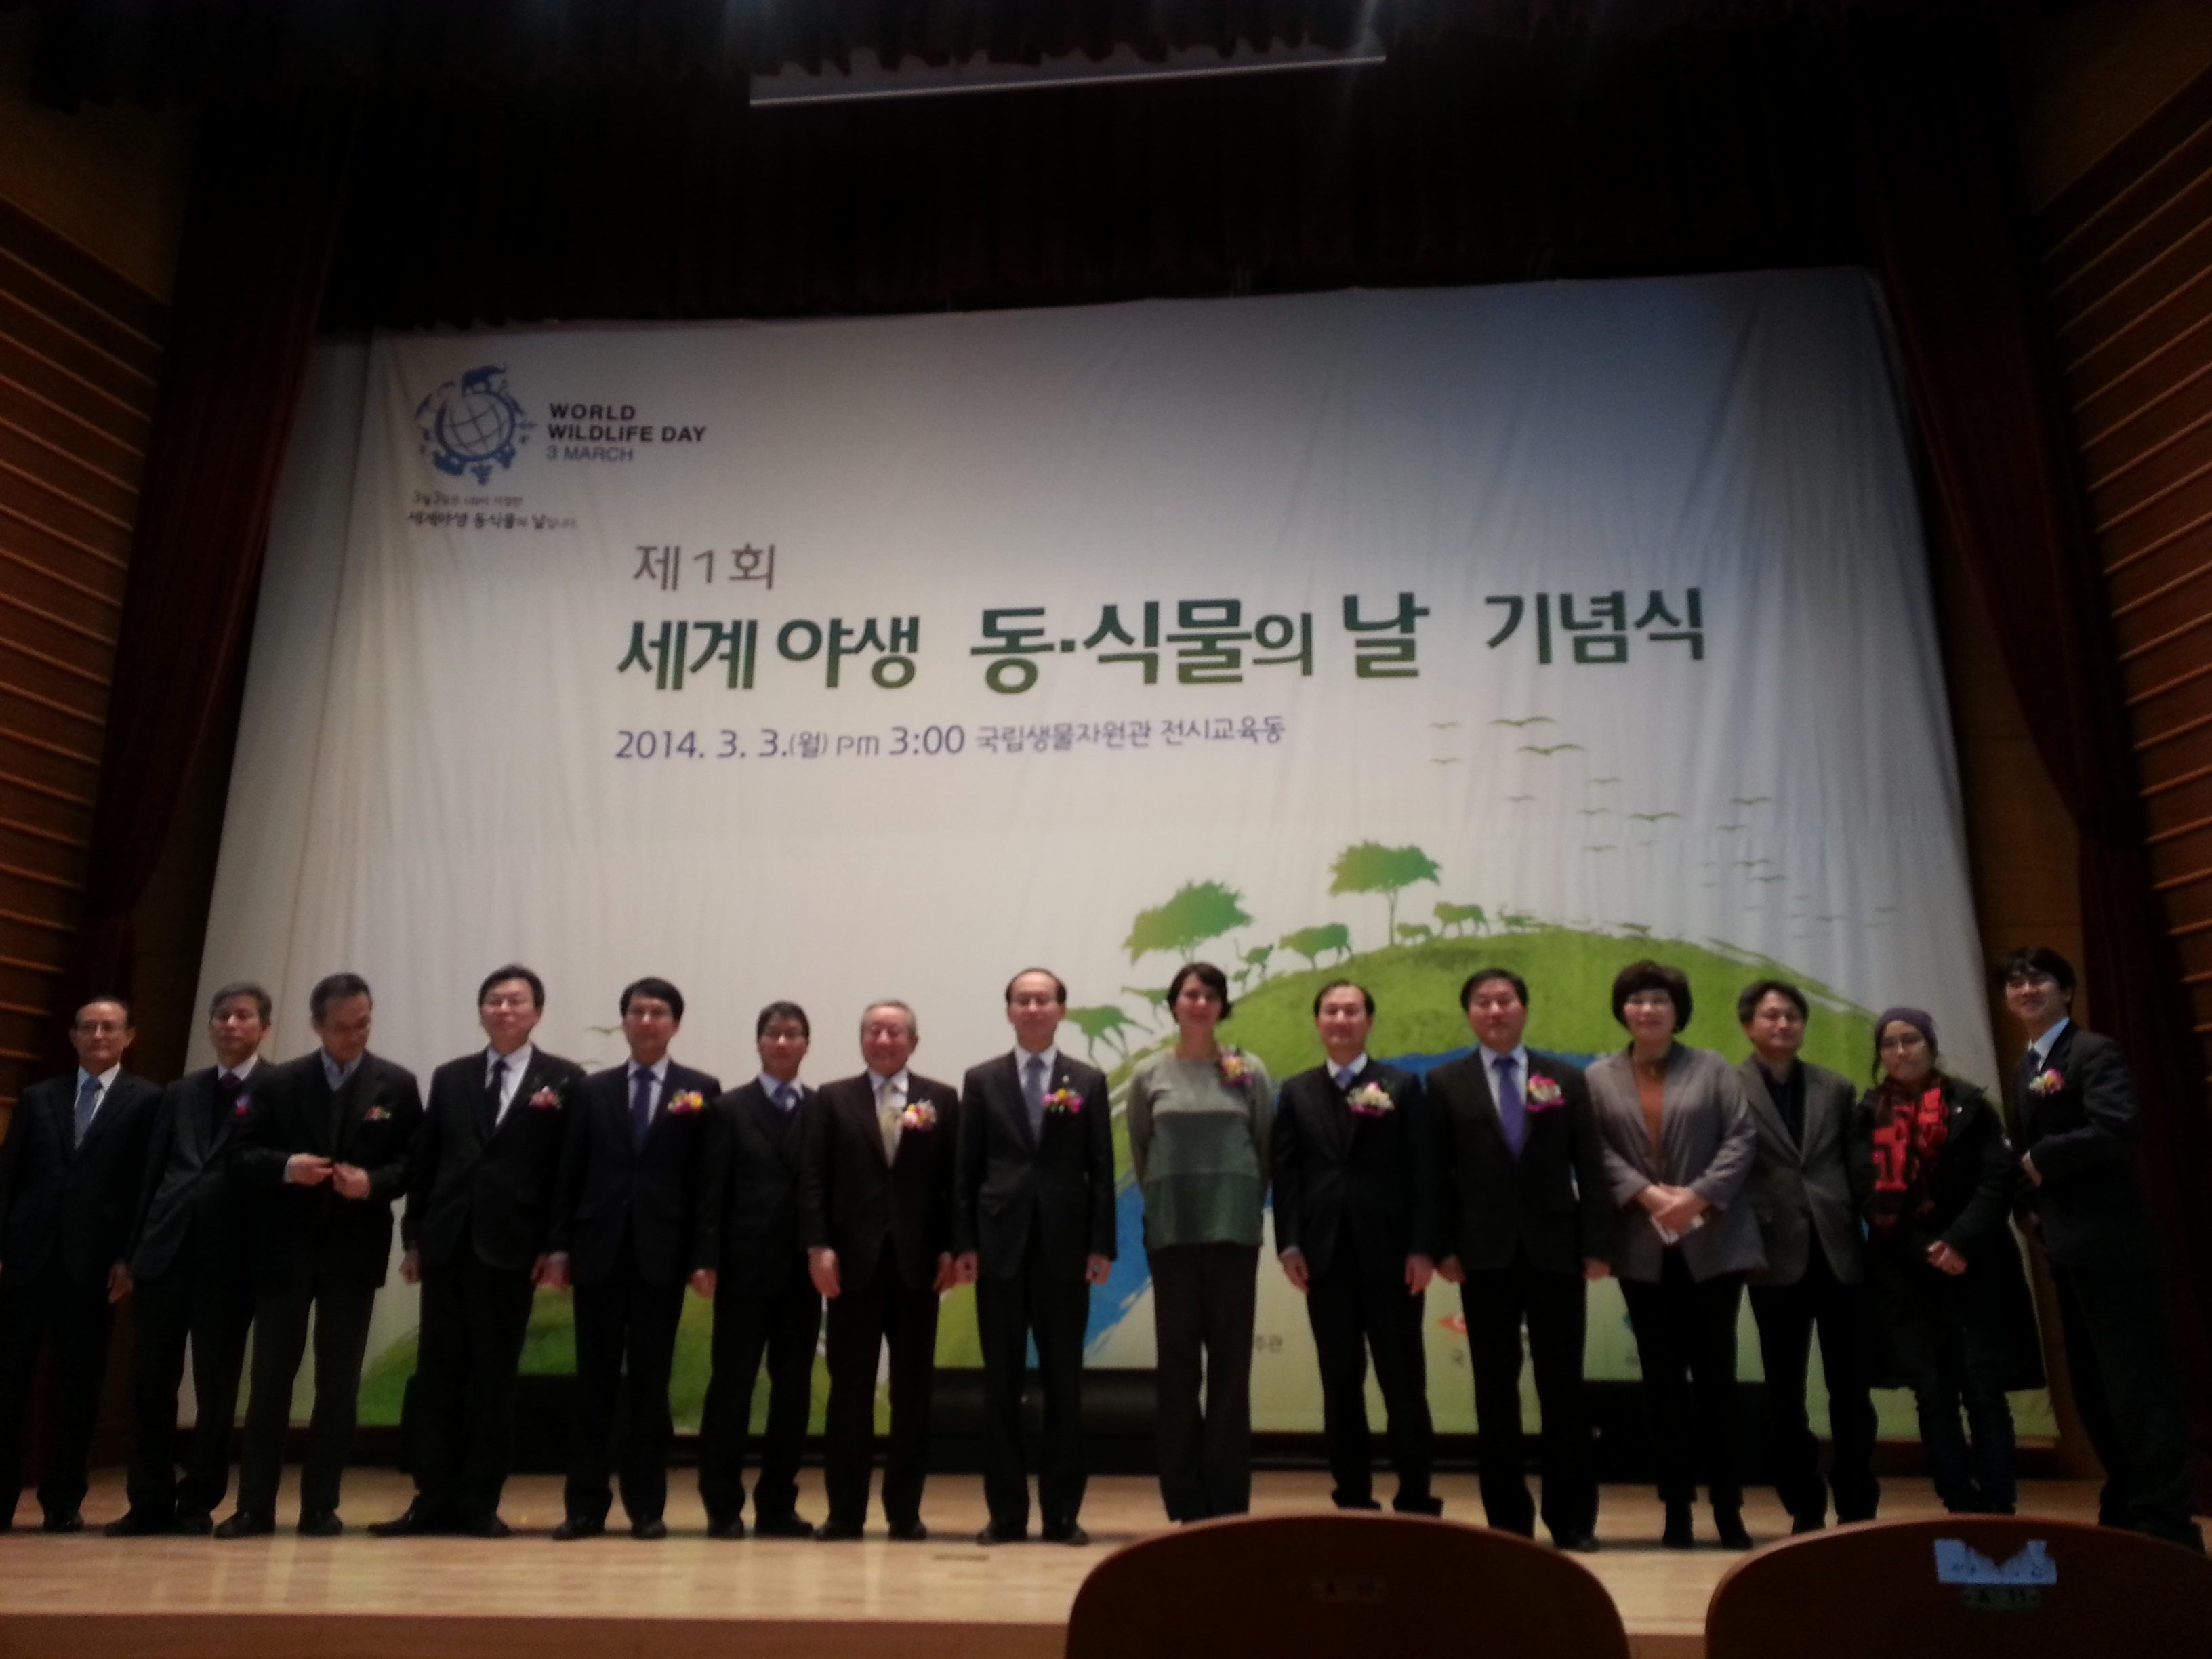 the photograph of the celebration on 1st World Wildlife Day in the Republic of Korea